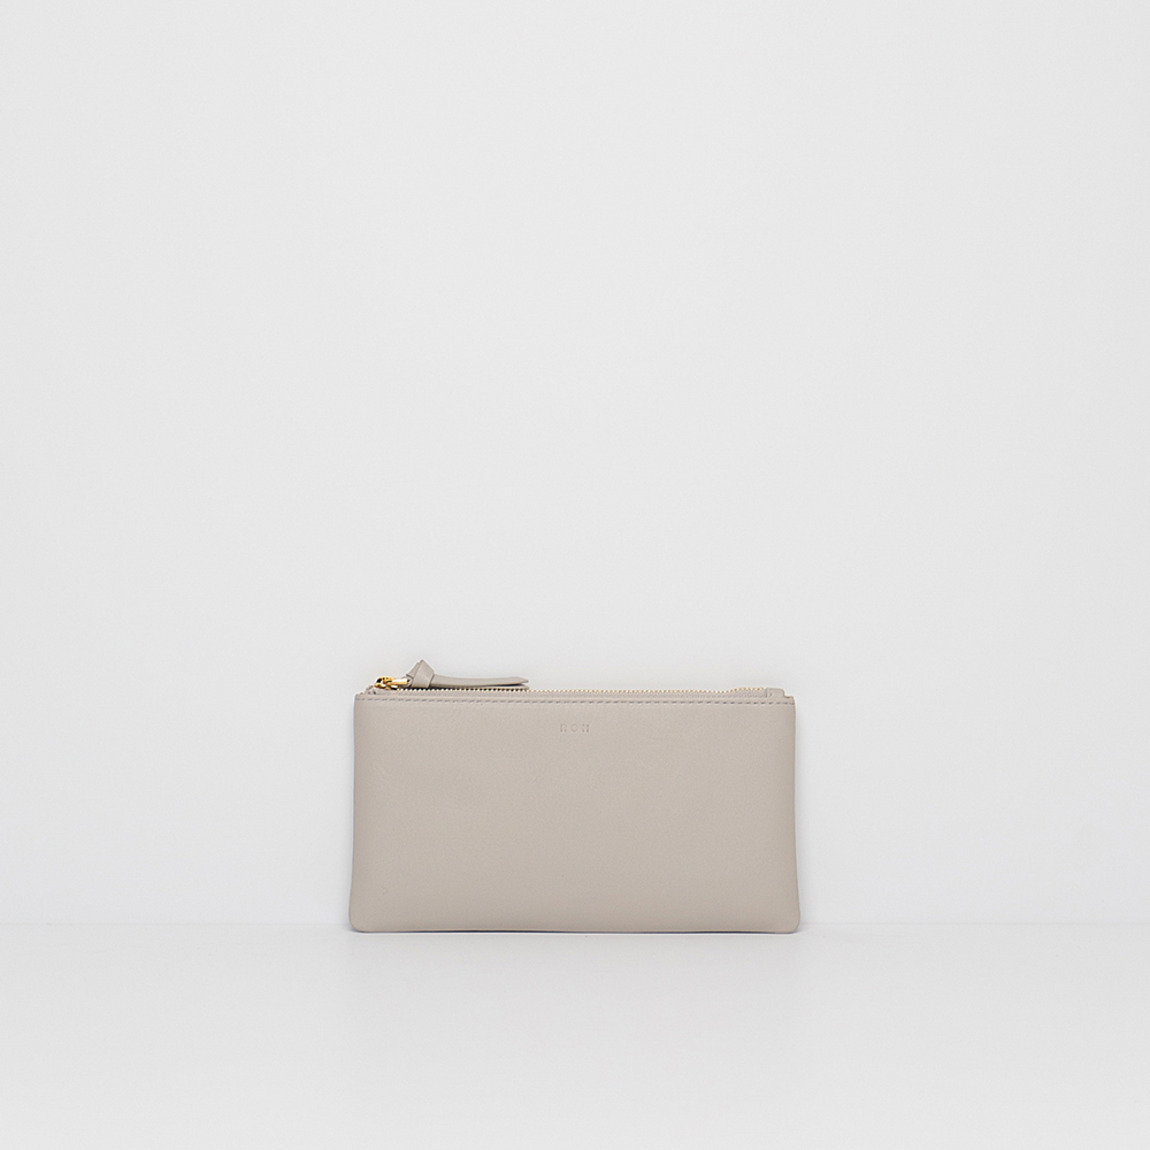 Basic Wallet Objet 2 Light Grey